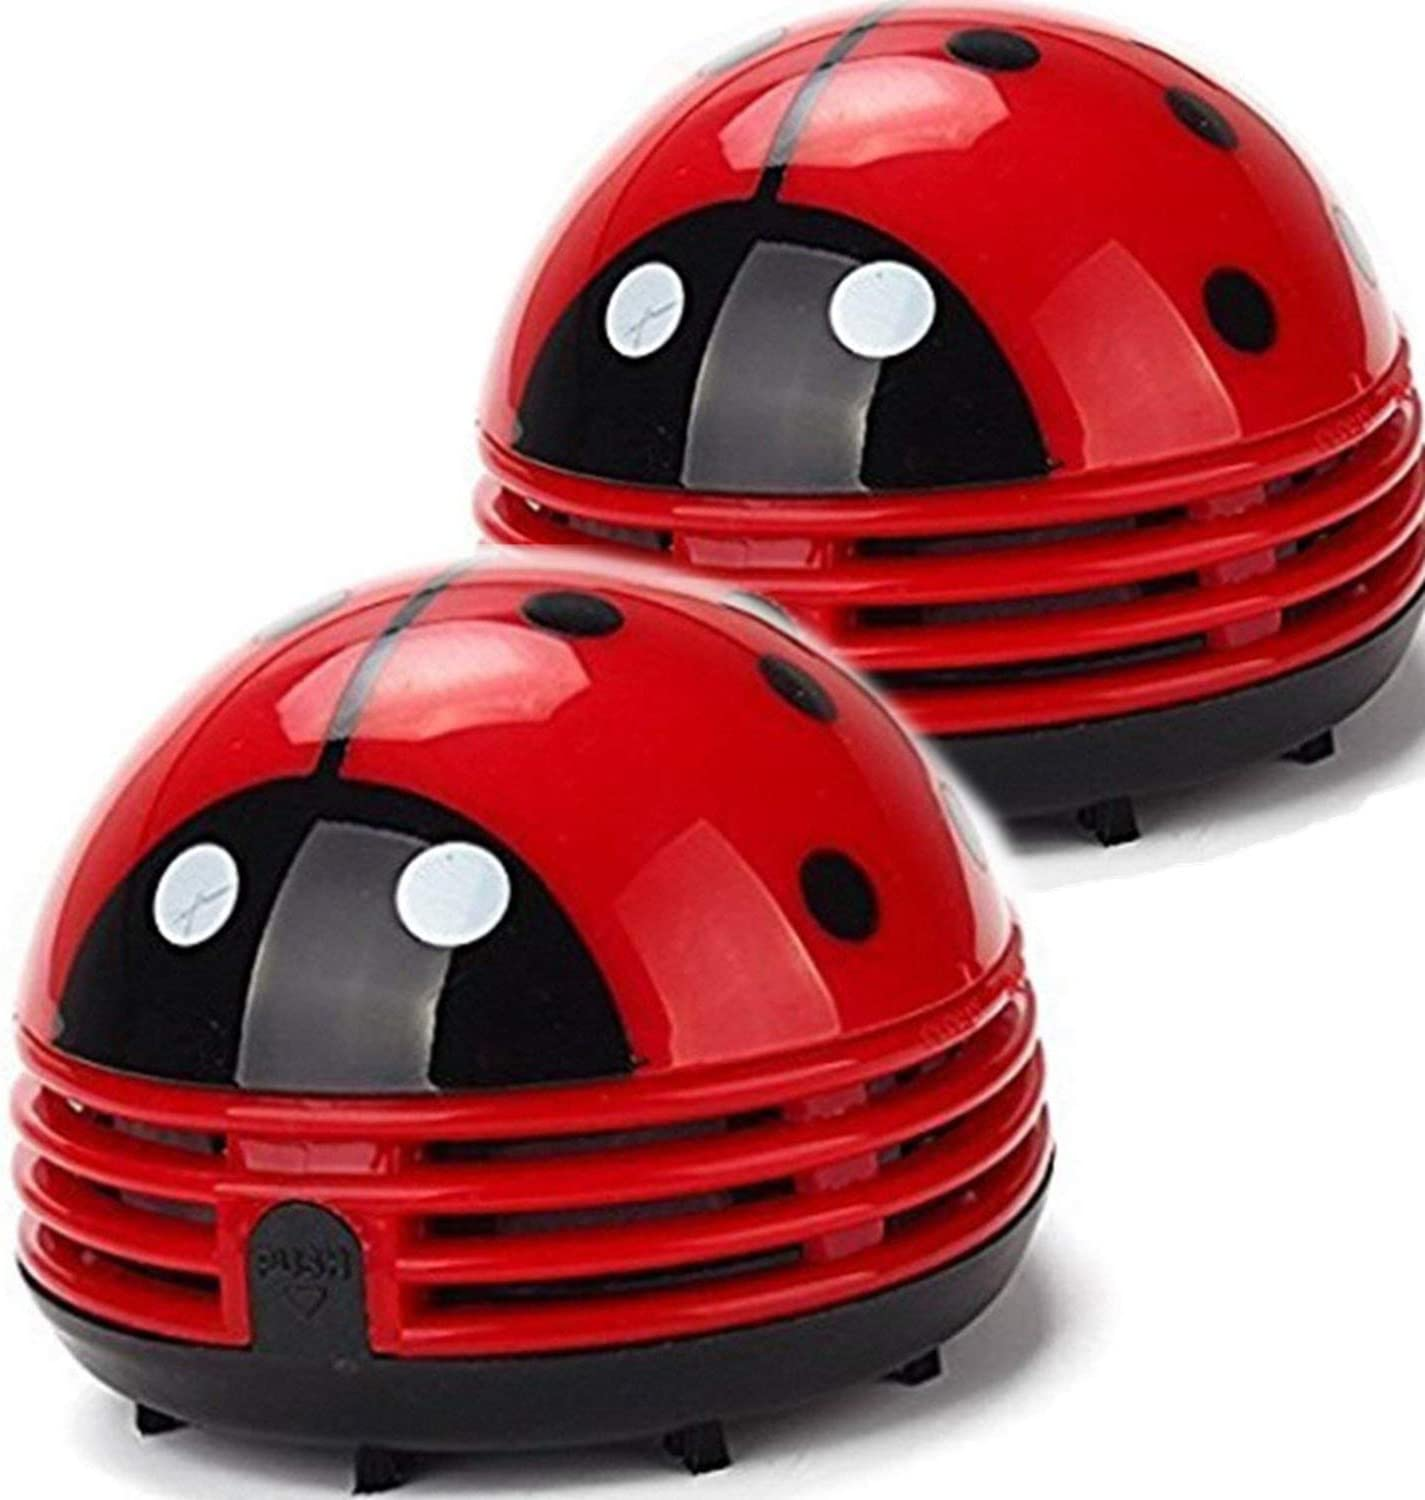 Ladybug Vacuum Cleaner - Mini Vacuum Cleaner Portable Corner Desk Vacuum Cleaner Mini Cute Vacuum Cleaner Dust Sweeper 2Pcs